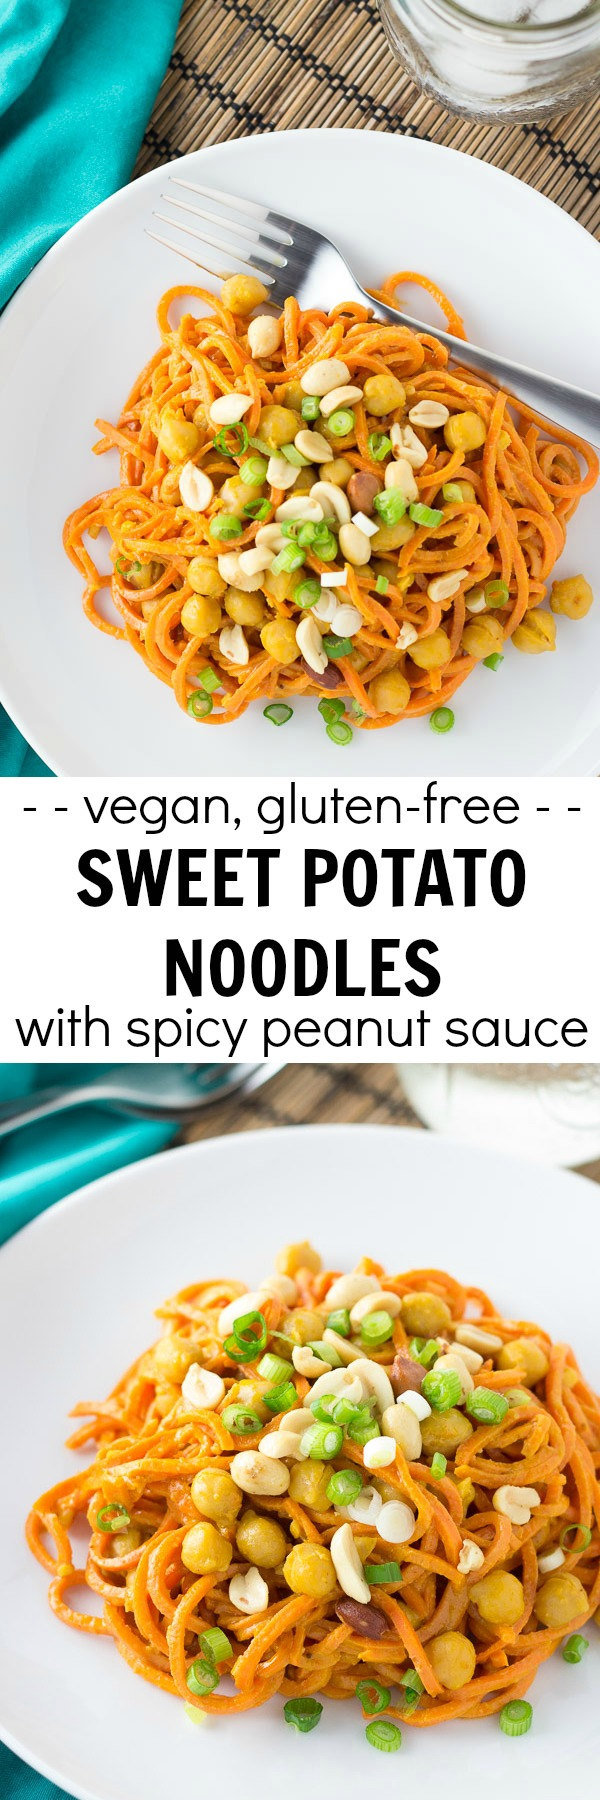 Sweet potato noodles with spicy peanut sauce and chickpeas. An easy one pot meal that's ready in 30 minutes! Your spiralizer makes this healthy, vegan, and gluten free dinner so quick and easy!